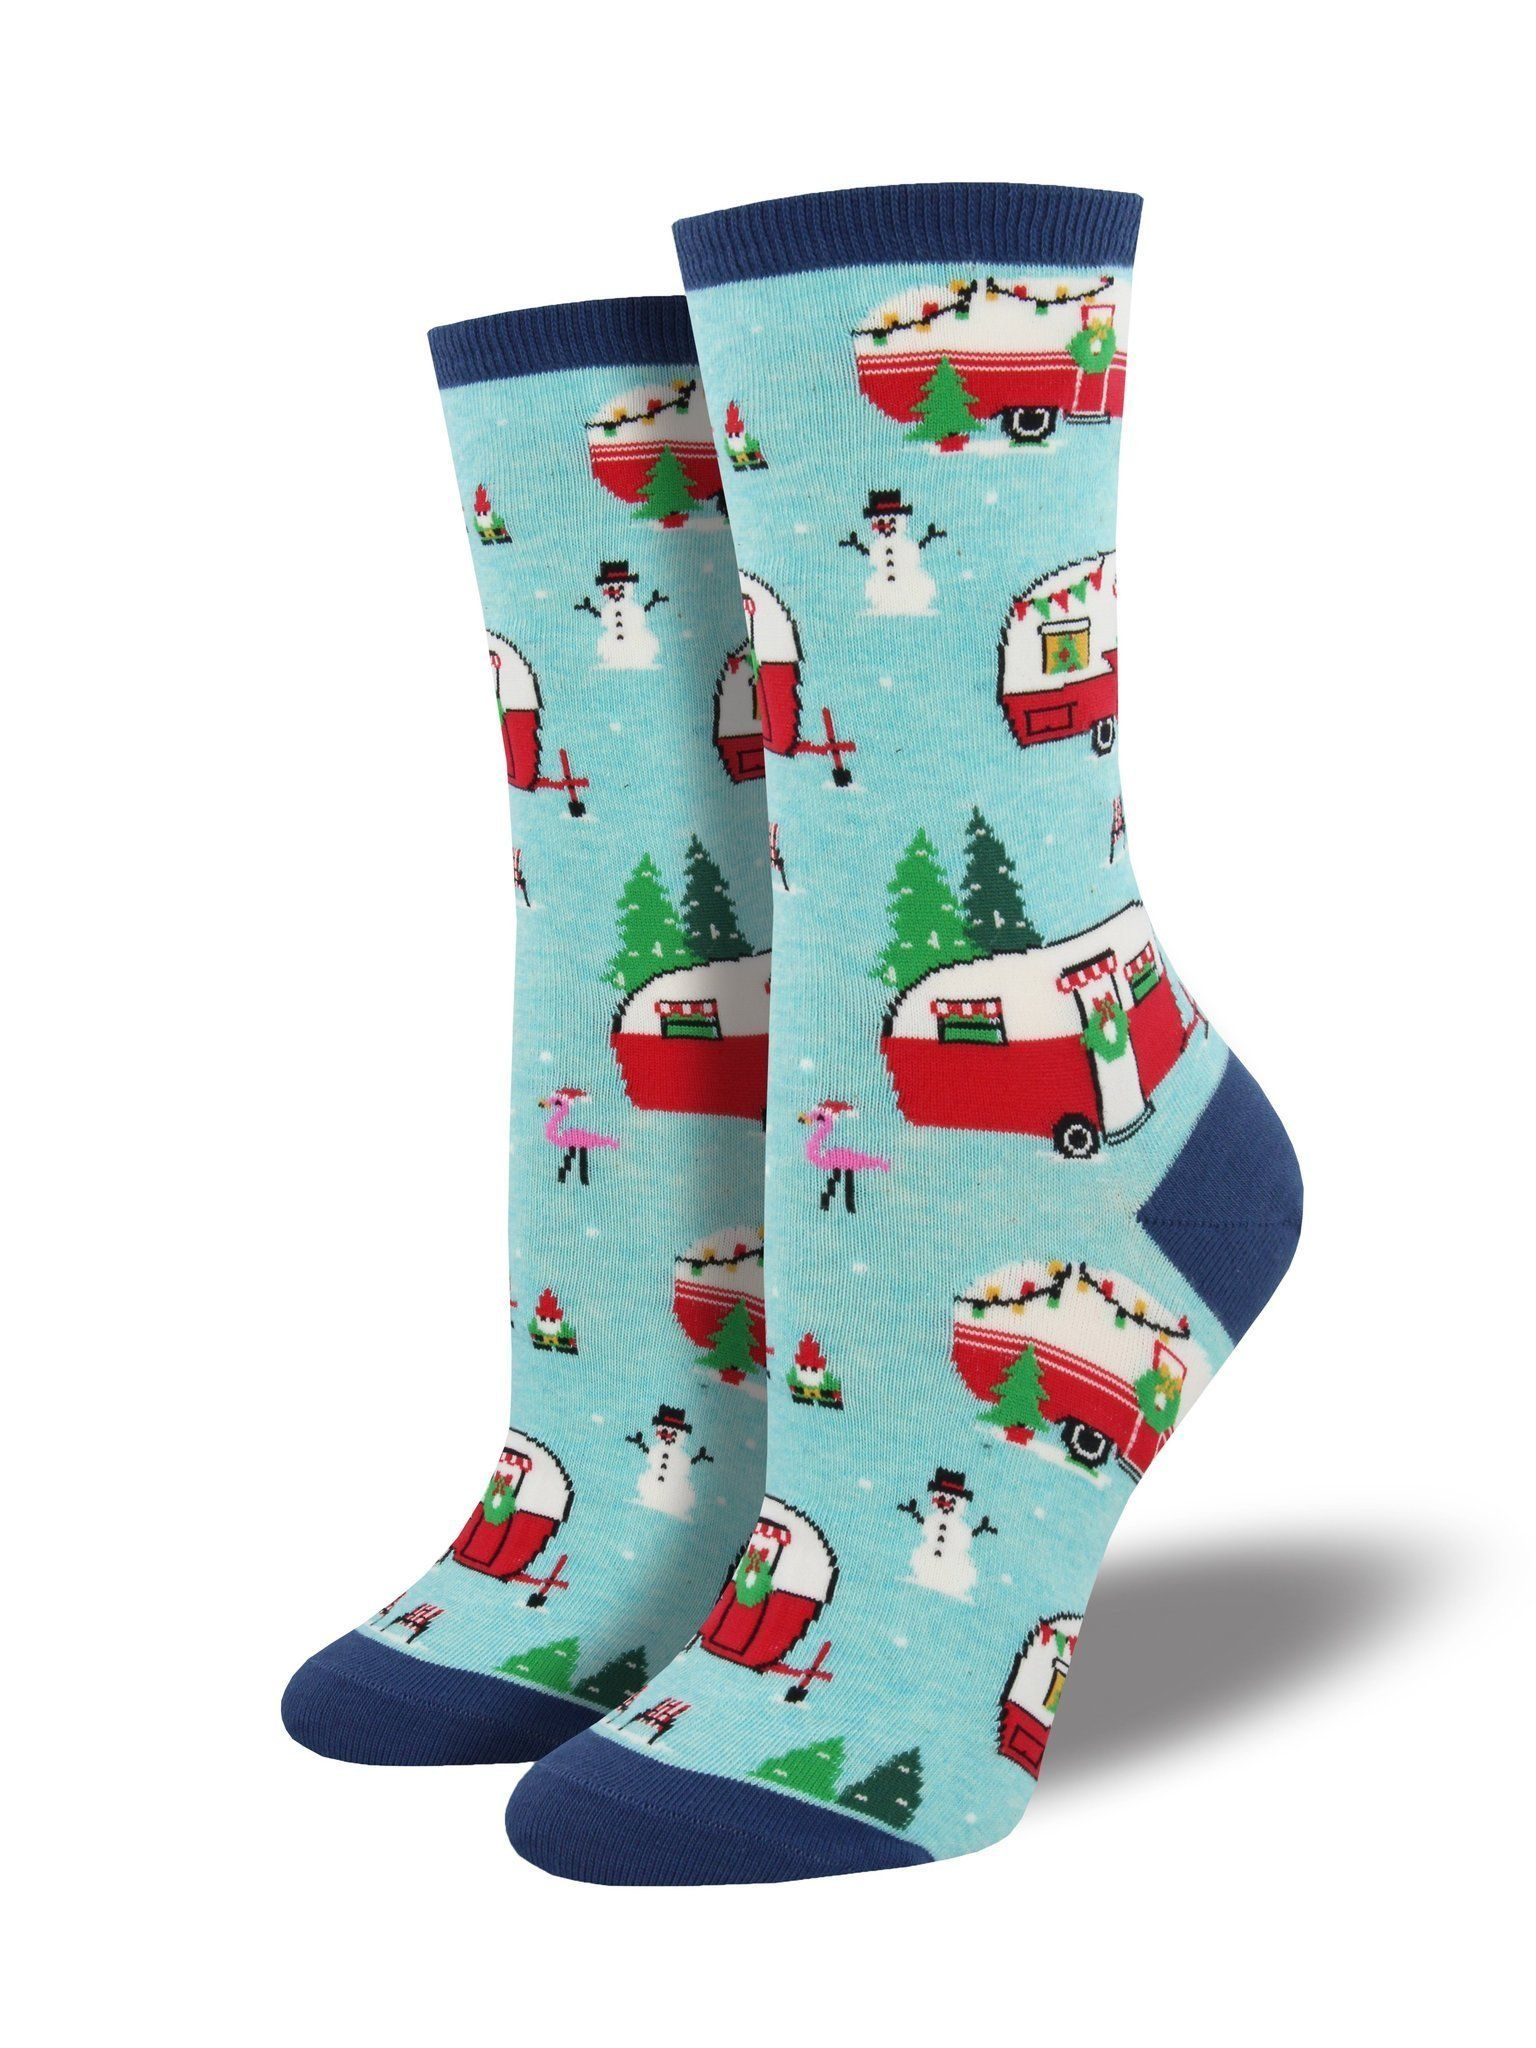 Socksmith - Christmas Campers Crew Socks | Women's - Knock Your Socks Off